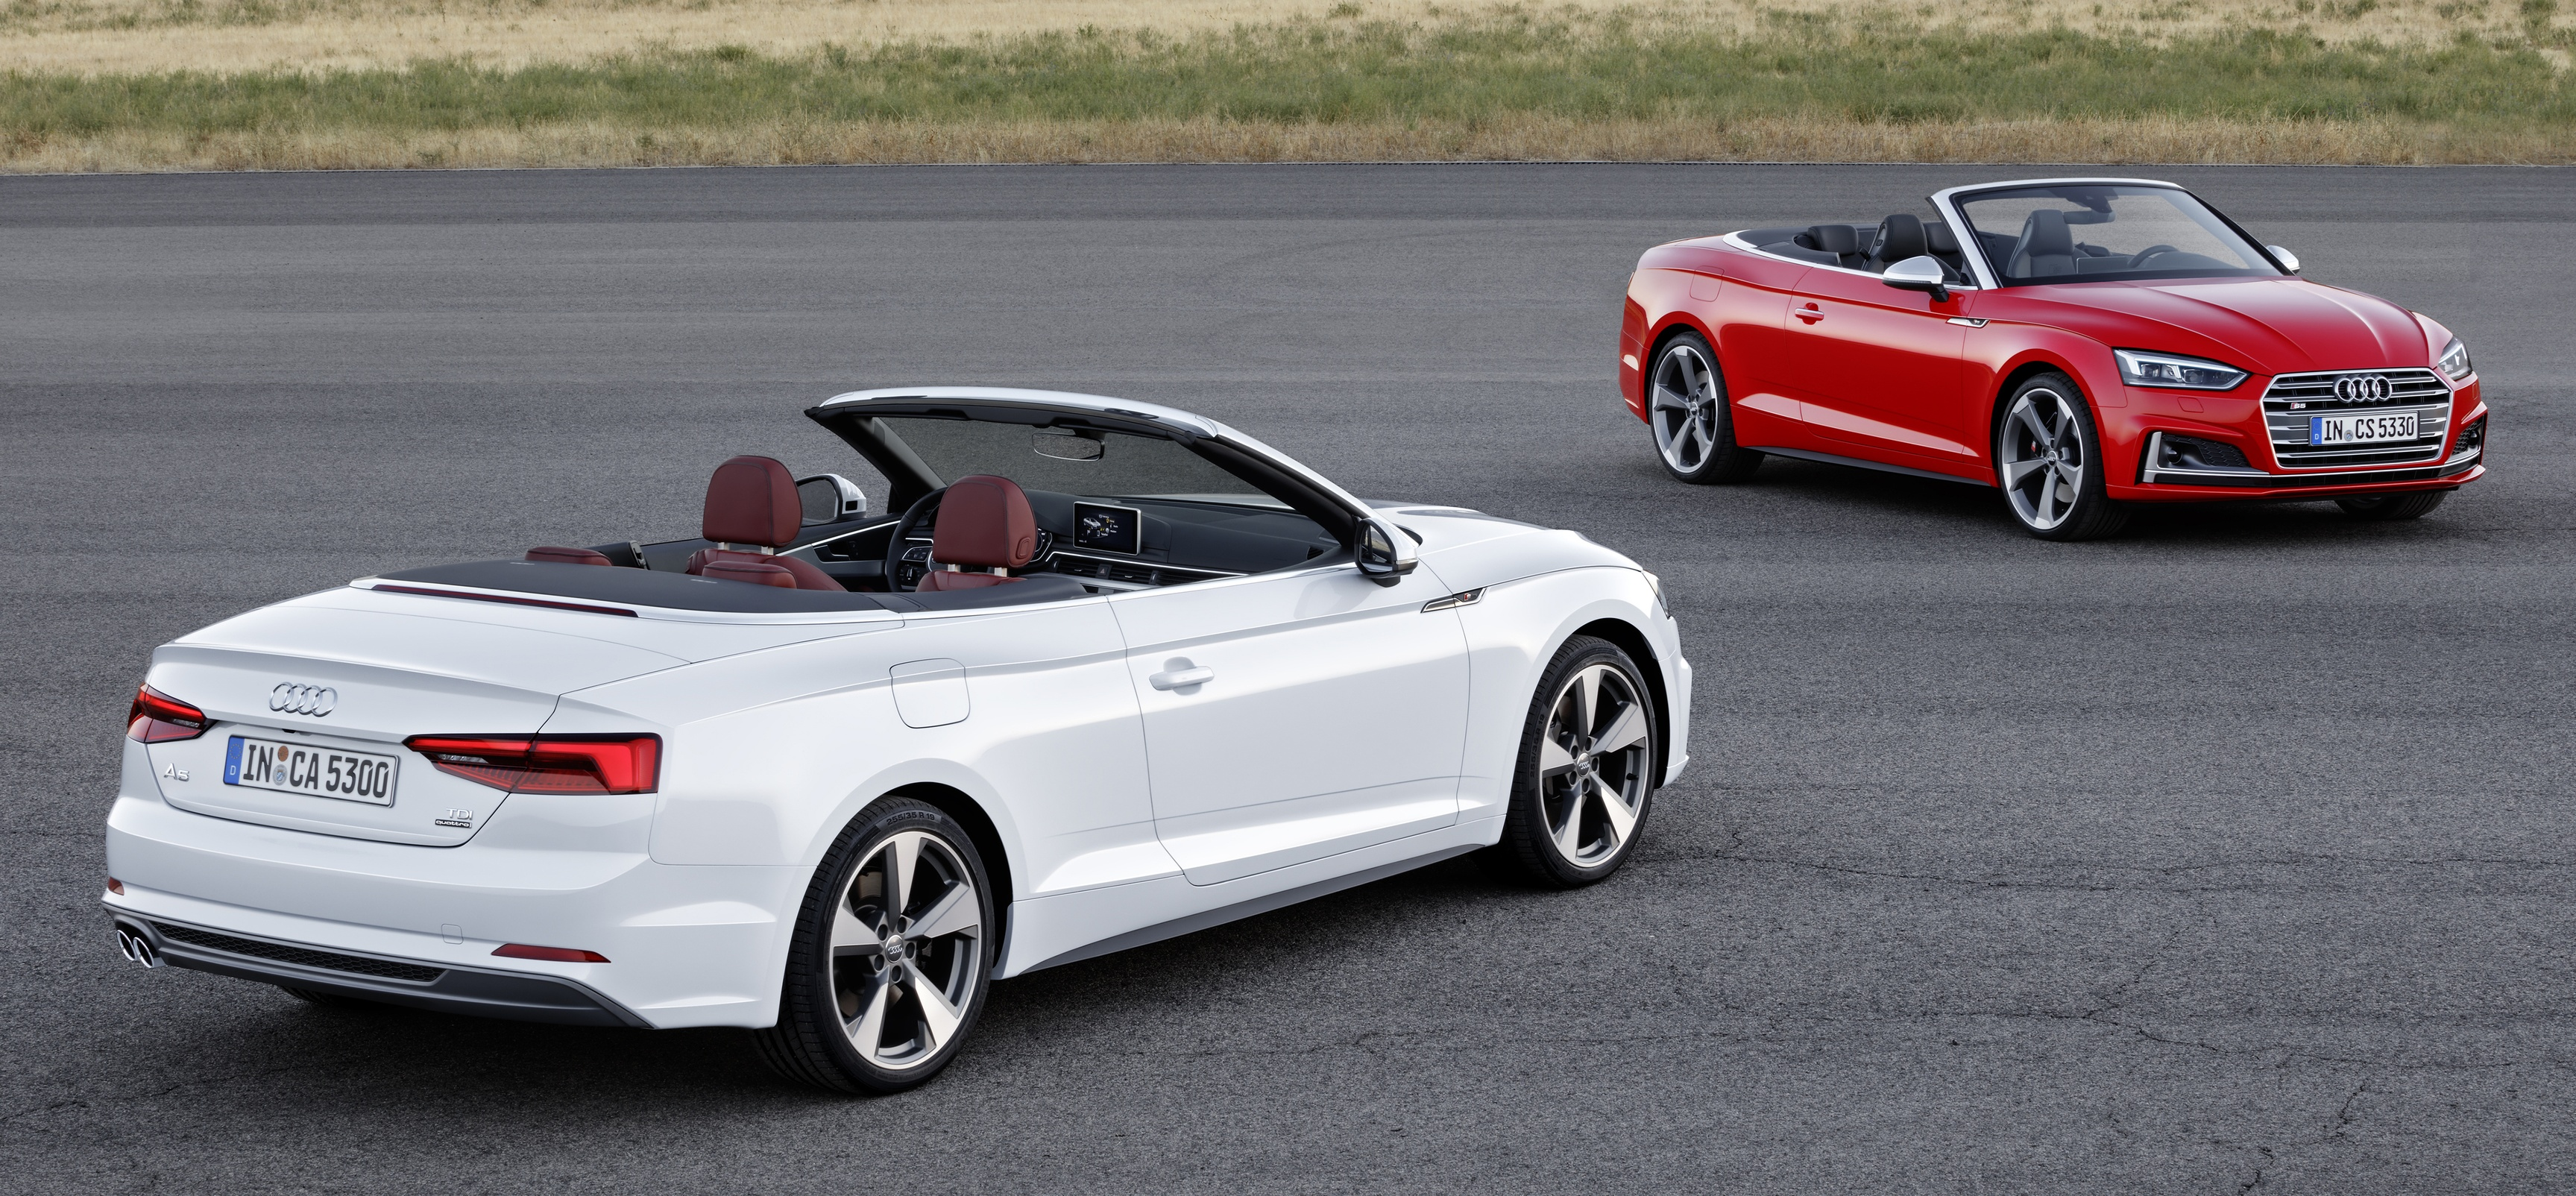 2017 Audi A5 And S5 Cabriolet The Soft Top Revealed Paul